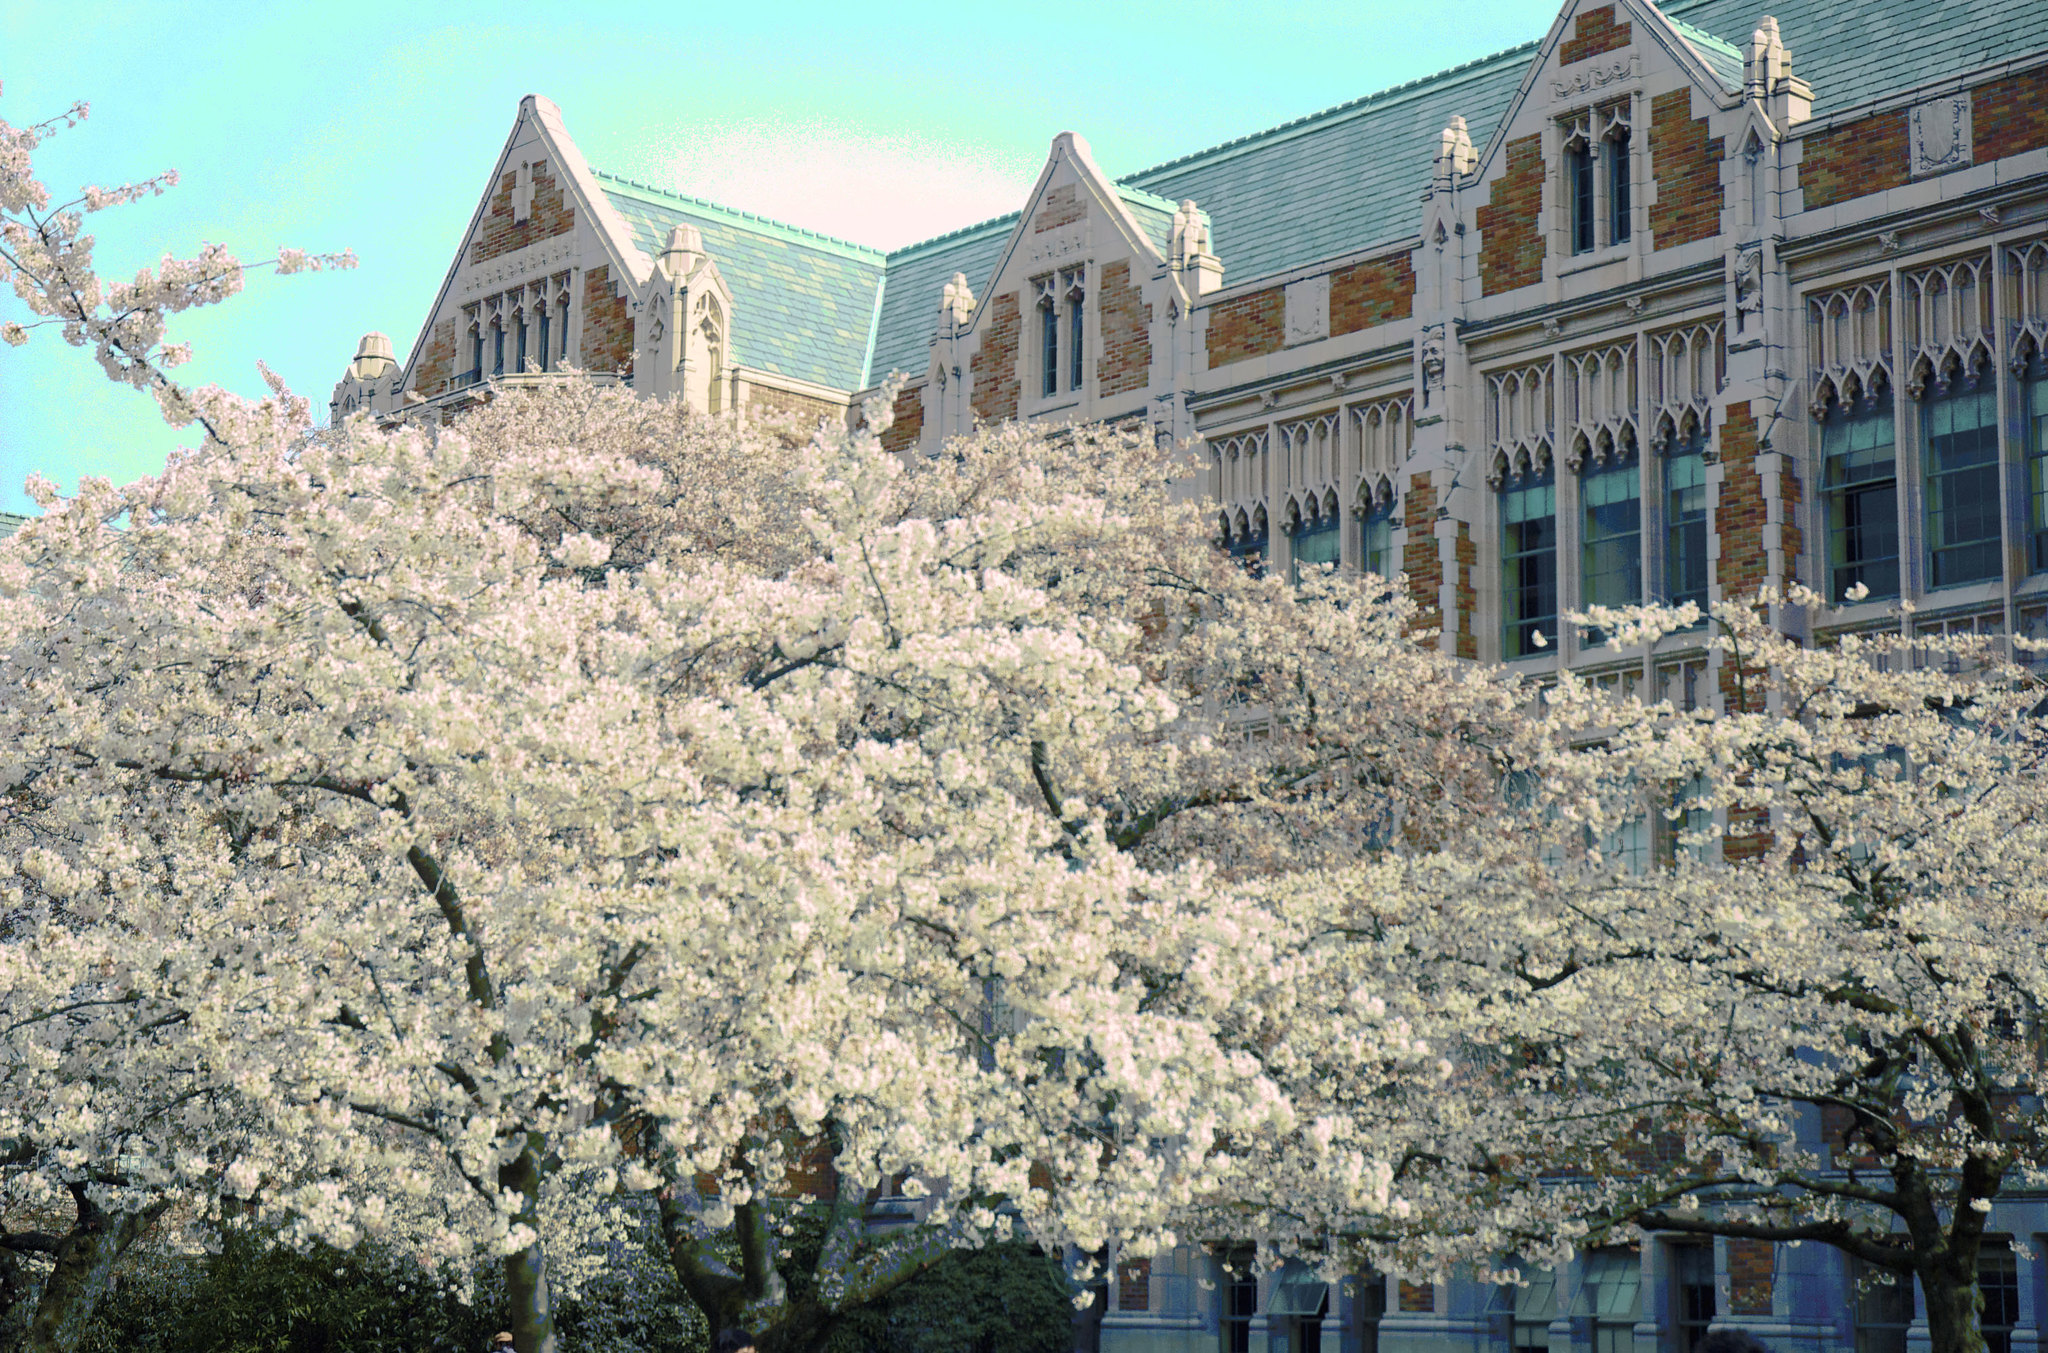 UW jumps to No. 8 in global ranking of best universities; computer science among top subjects